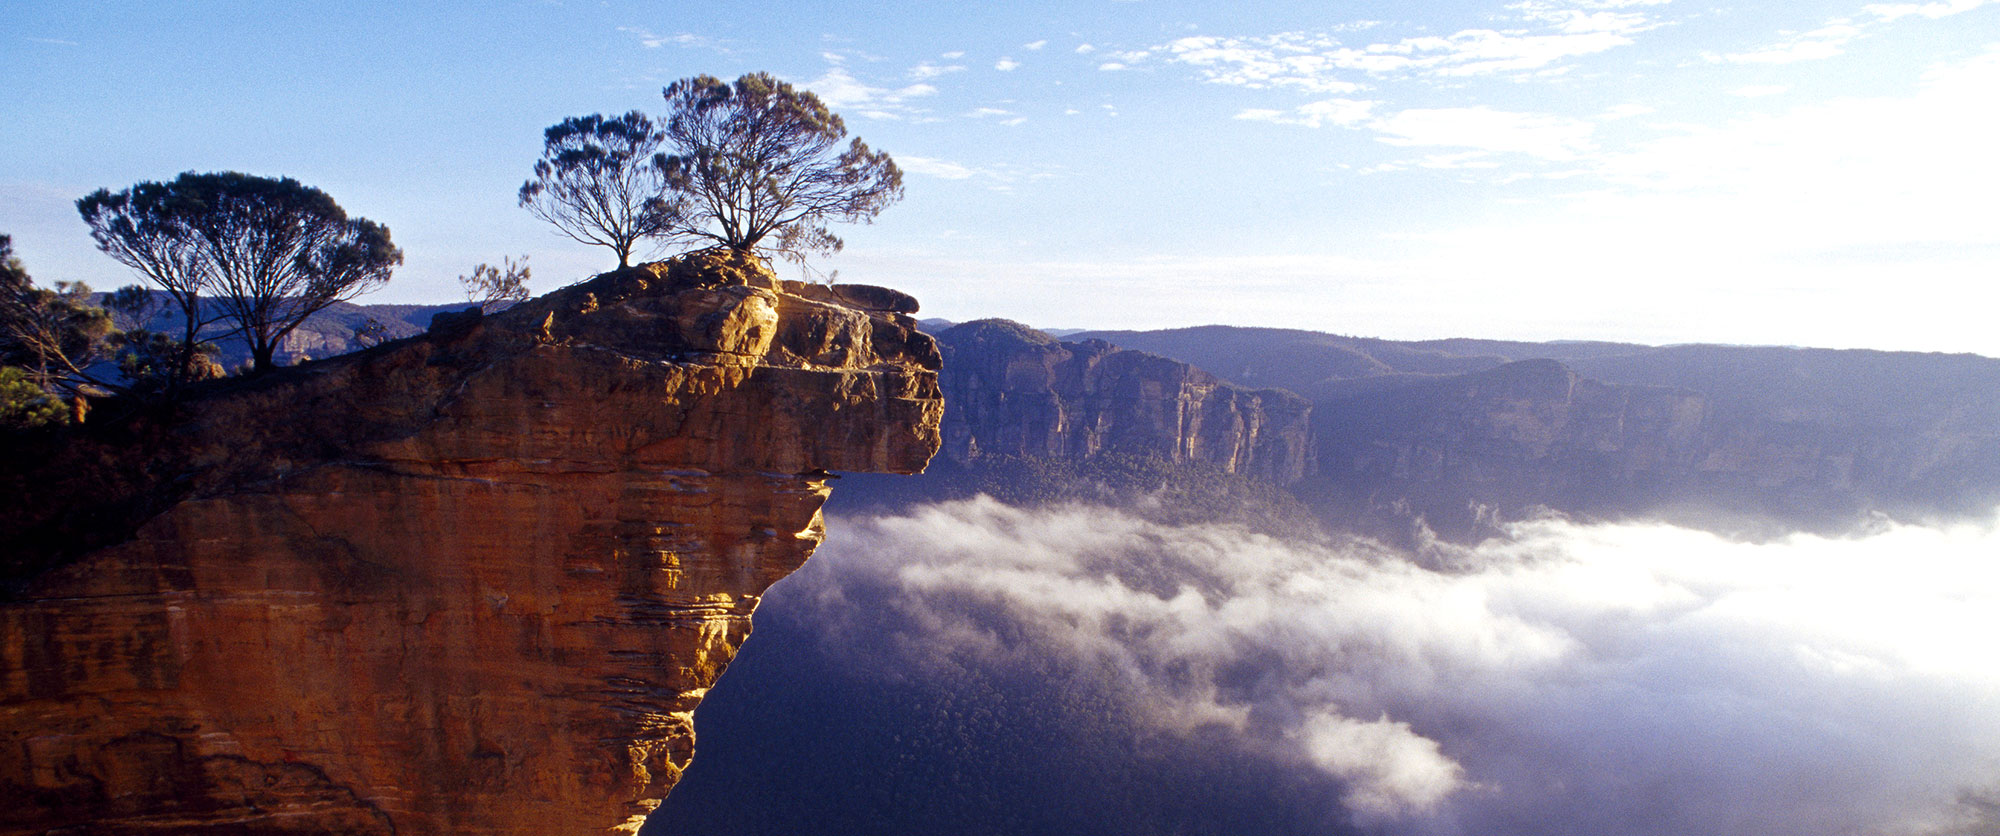 Australian Travel Packages: Sydney and Surrounds - Blue Mountains